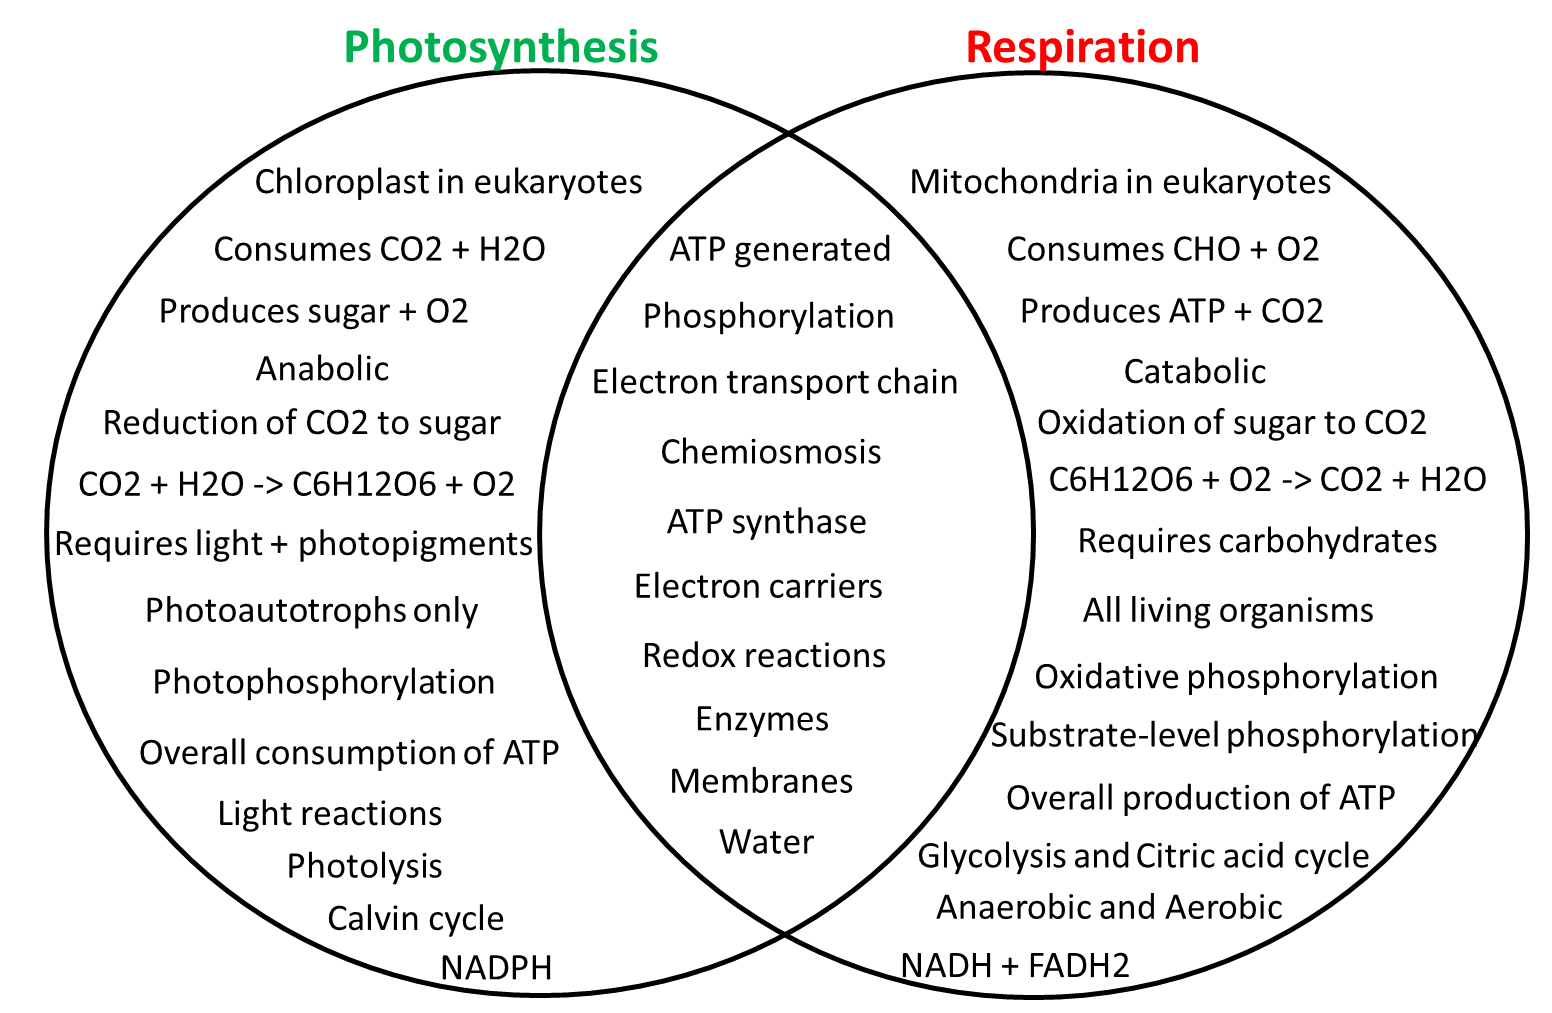 Similarities between Photosynthesis and